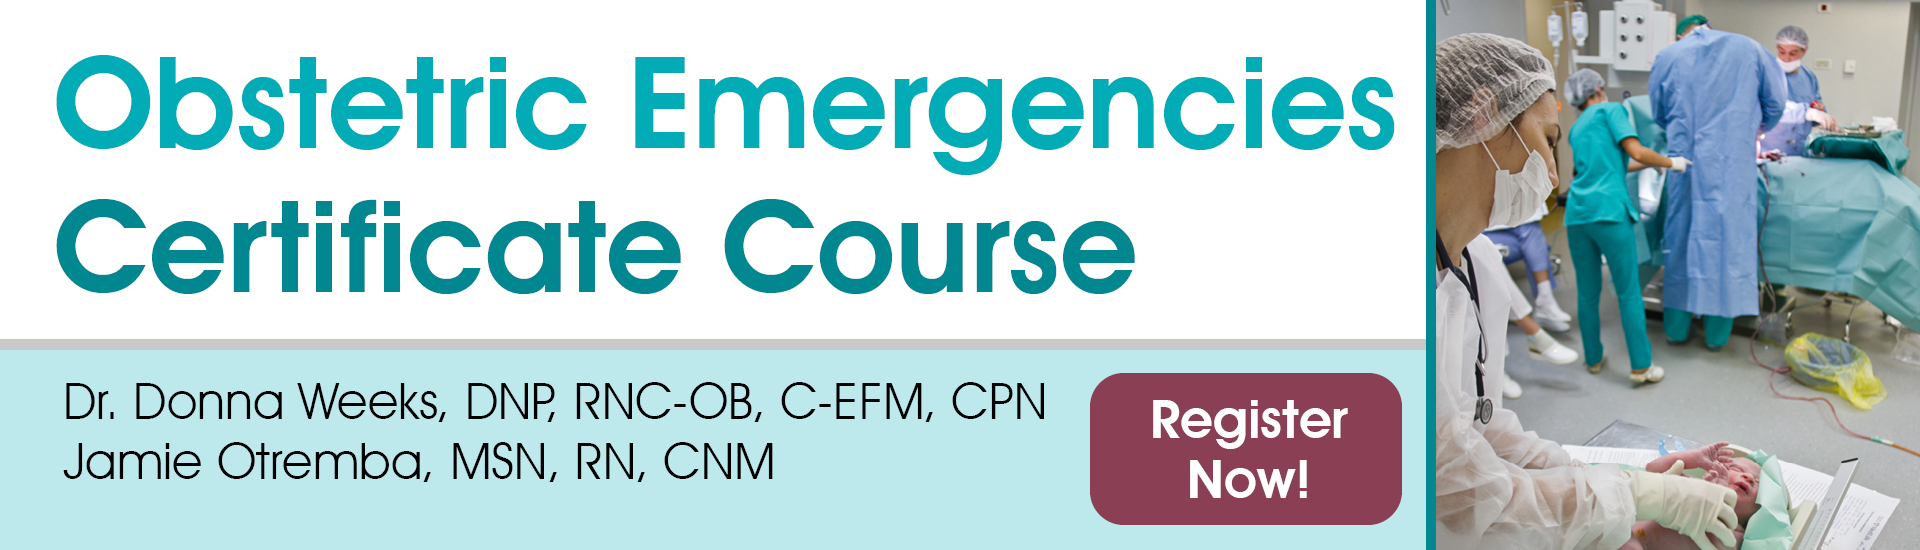 Obstetric Emergencies Certificate Course